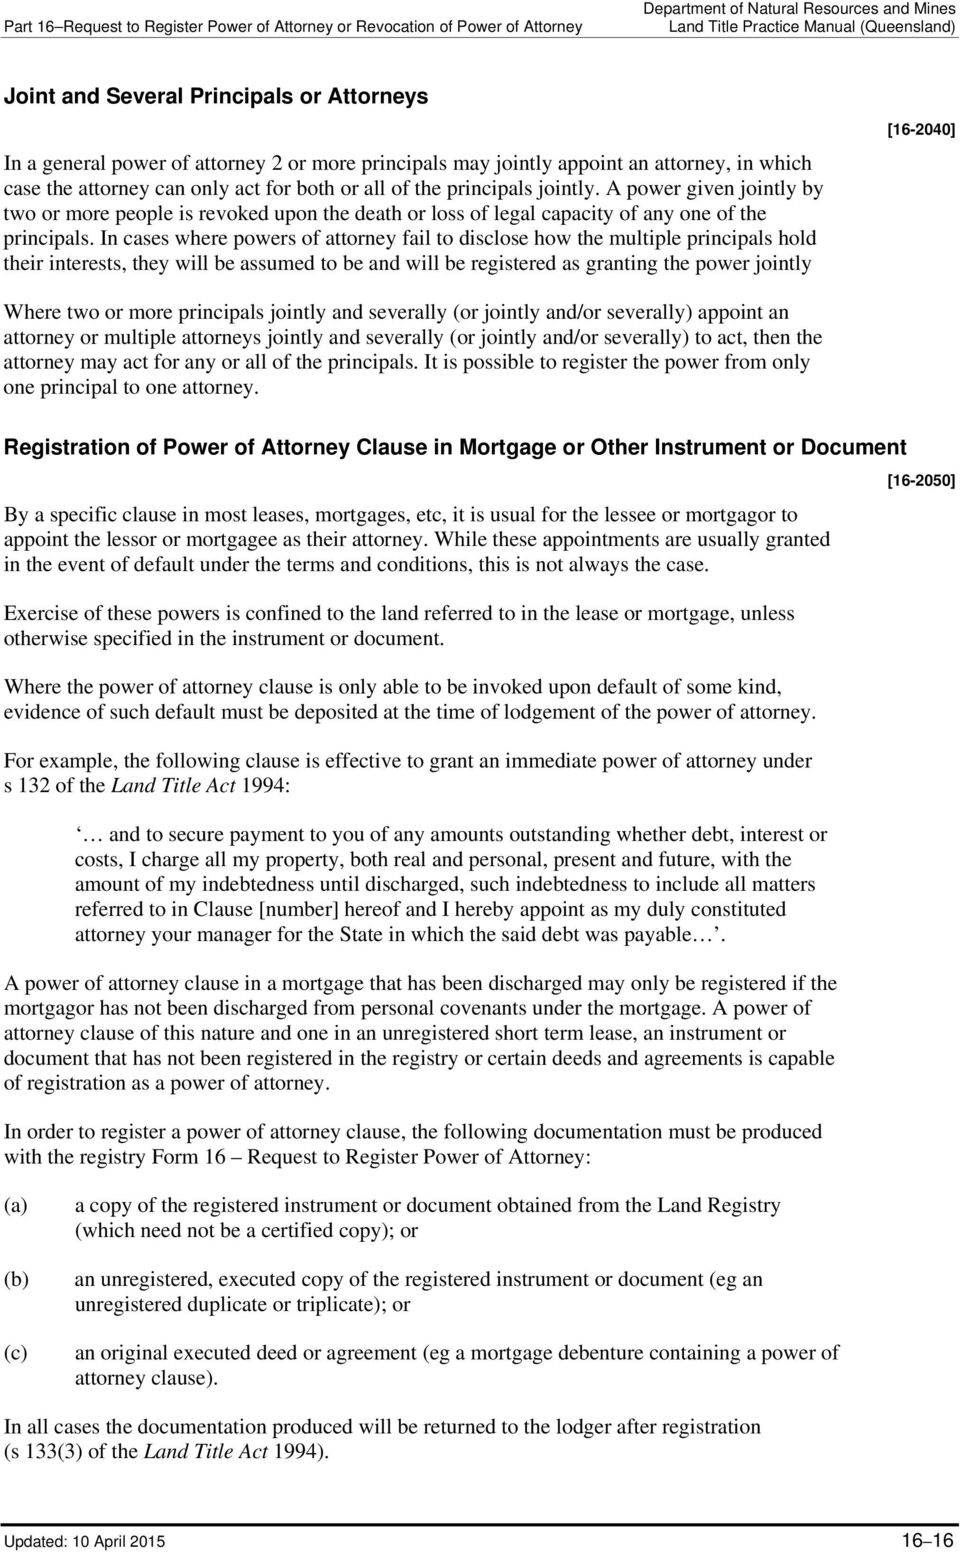 In cases where powers of attorney fail to disclose how the multiple principals hold their interests, they will be assumed to be and will be registered as granting the power jointly [16-2040] Where